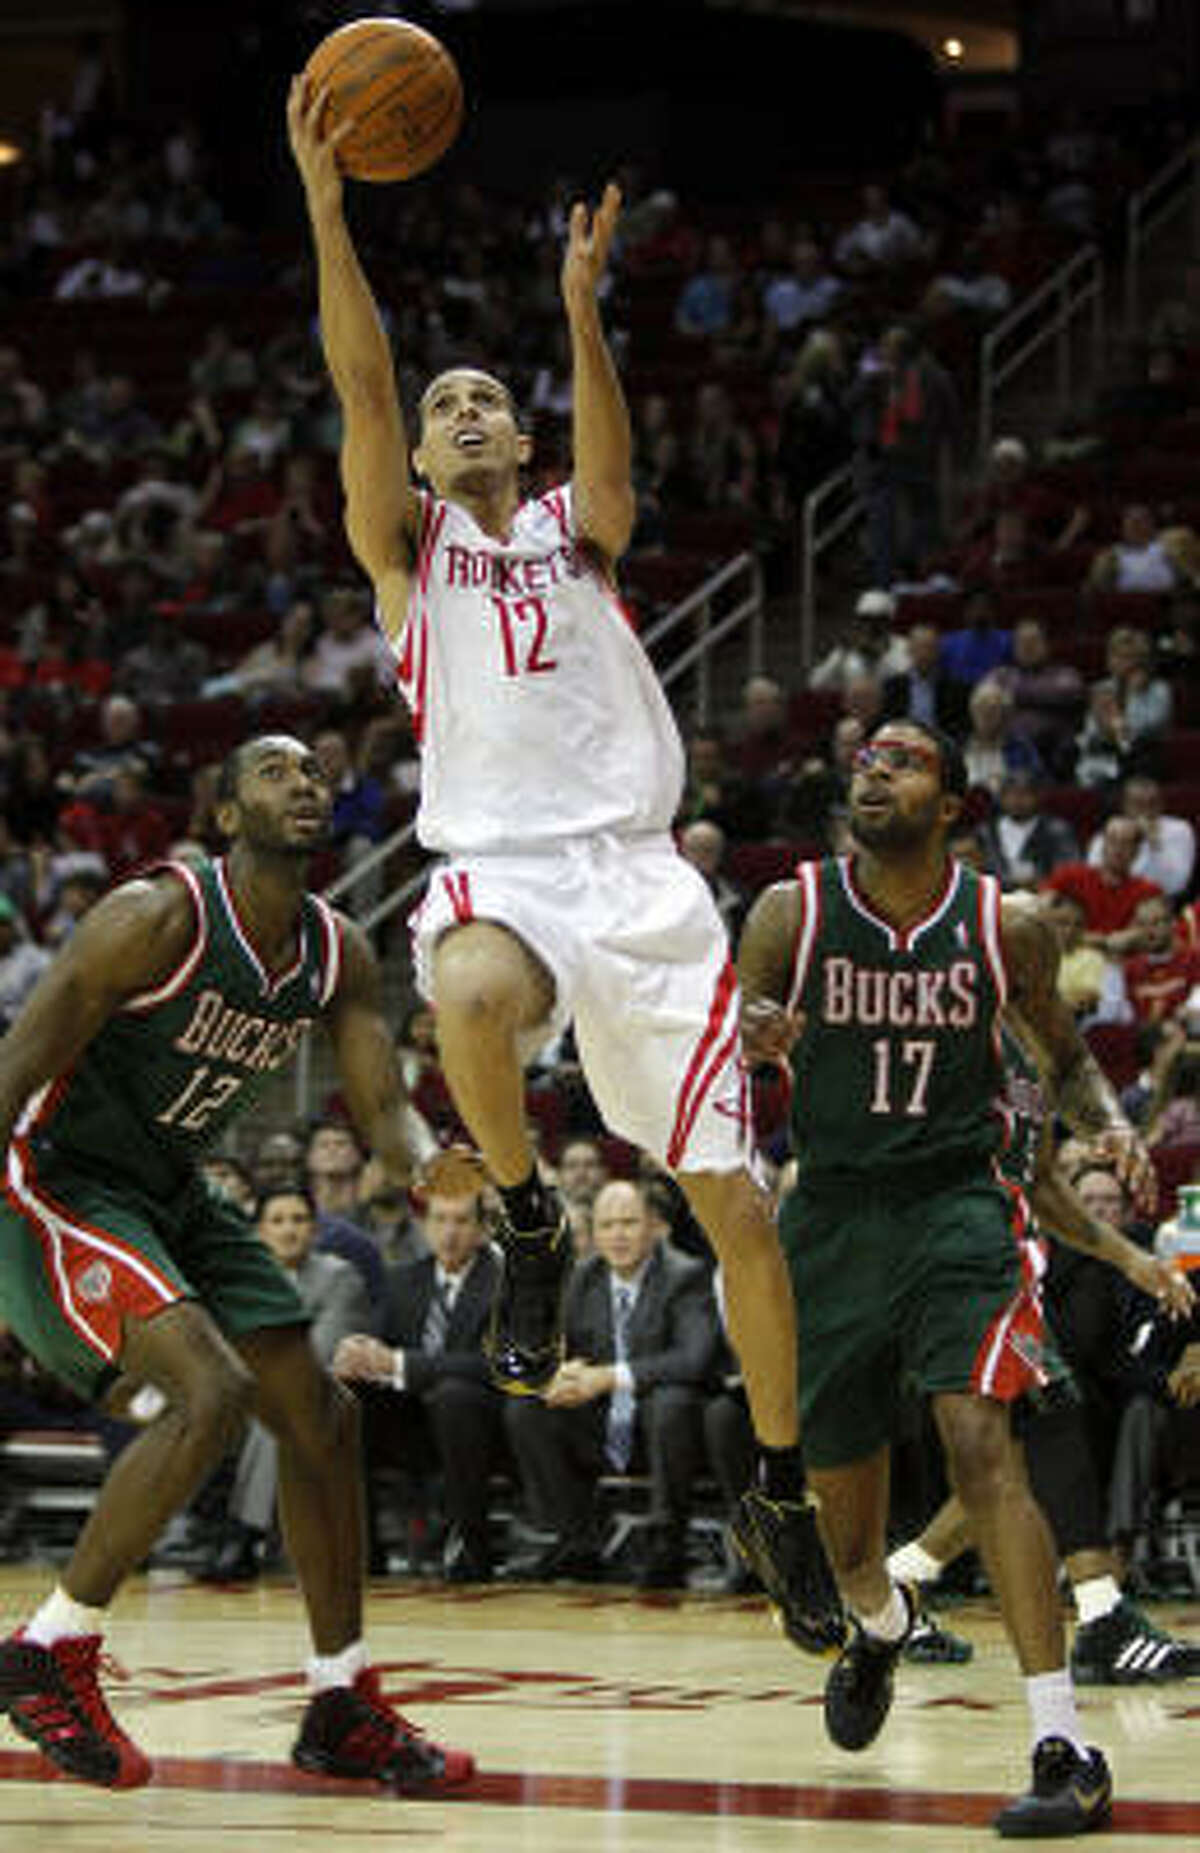 Rockets guard Kevin Martin takes a shot between Bucks forwards Luc Mbah a Moute and Chris Douglas-Roberts.